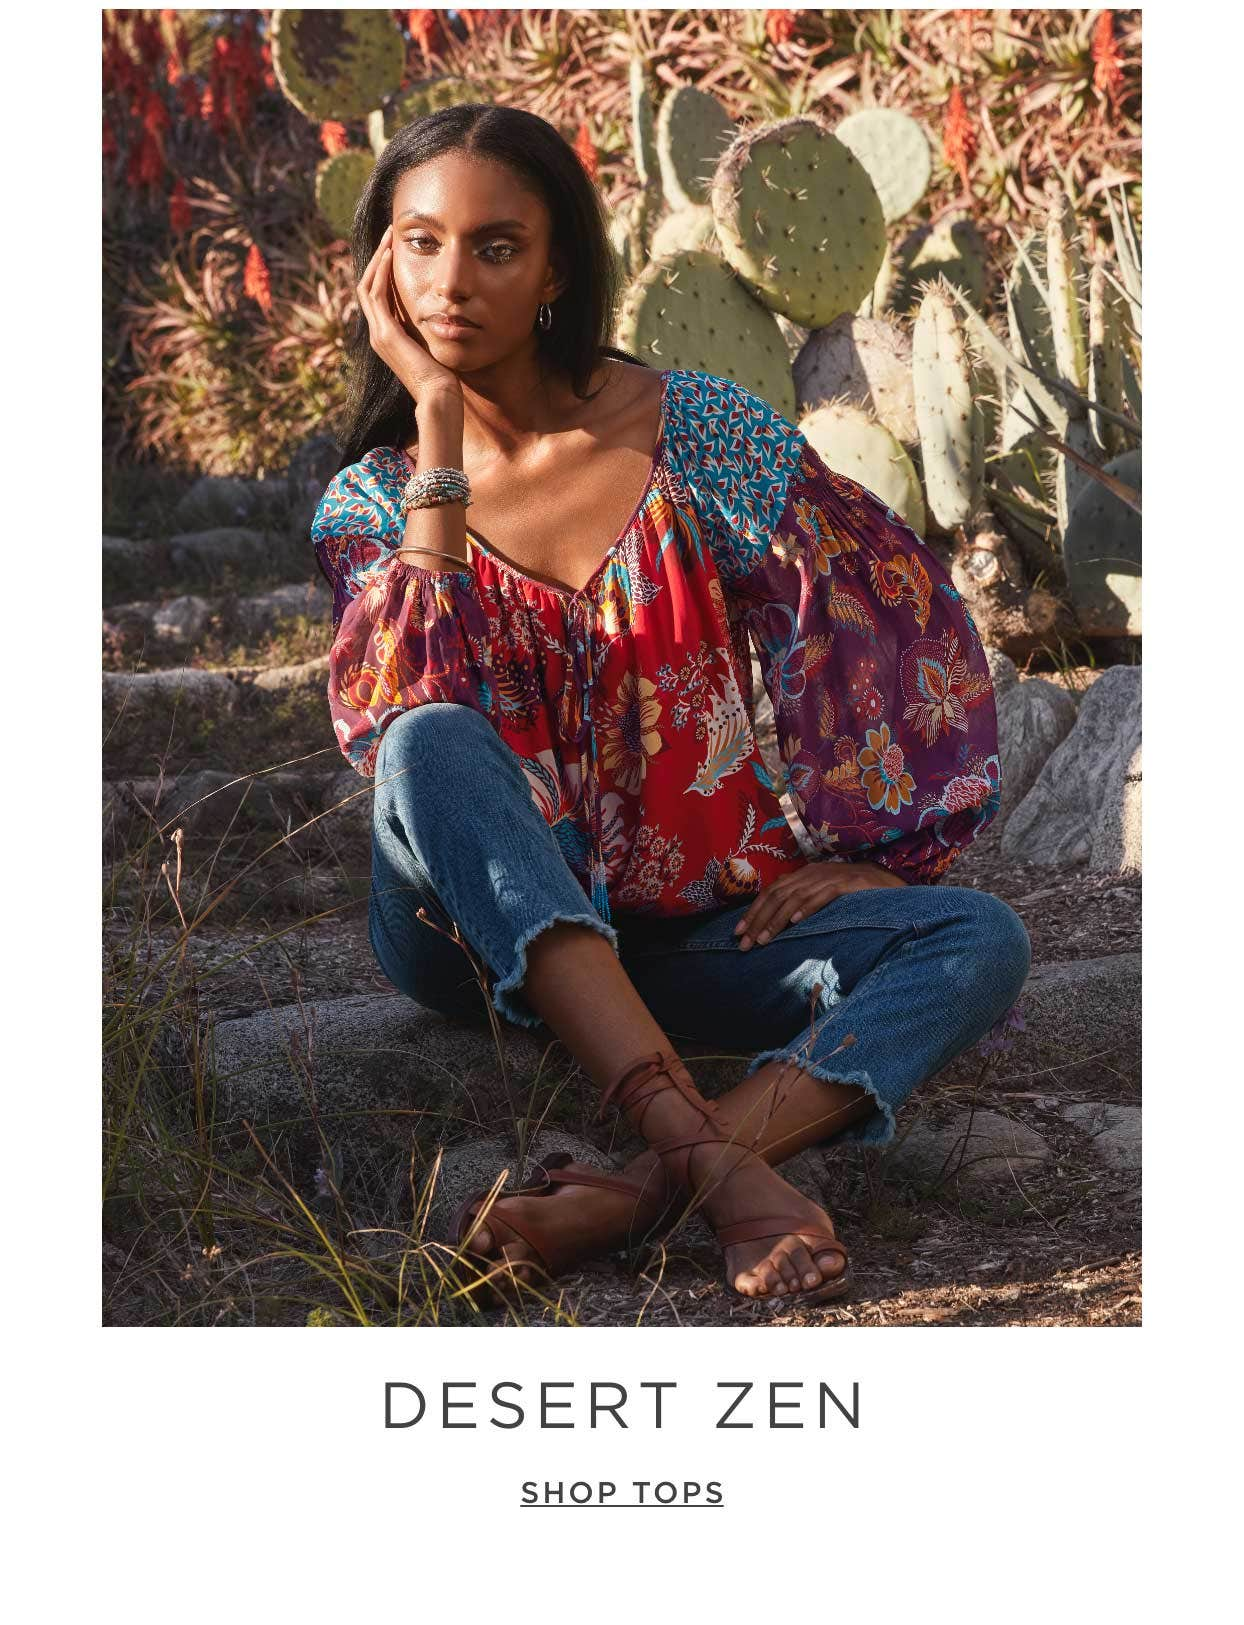 Desert Zen - Shop Tops